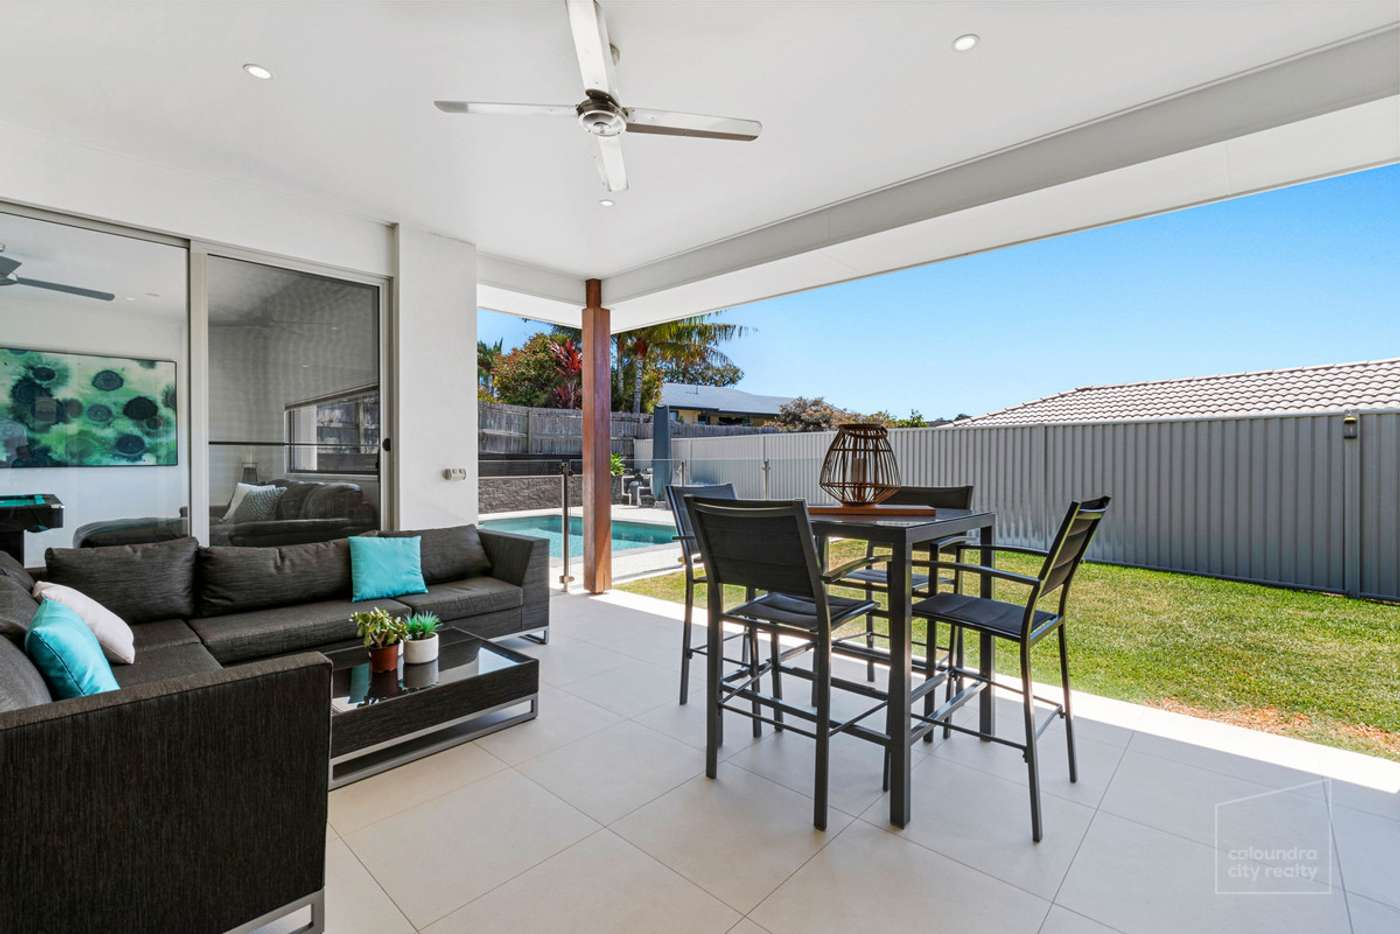 Fifth view of Homely house listing, 26 Wilderness Circuit, Little Mountain QLD 4551